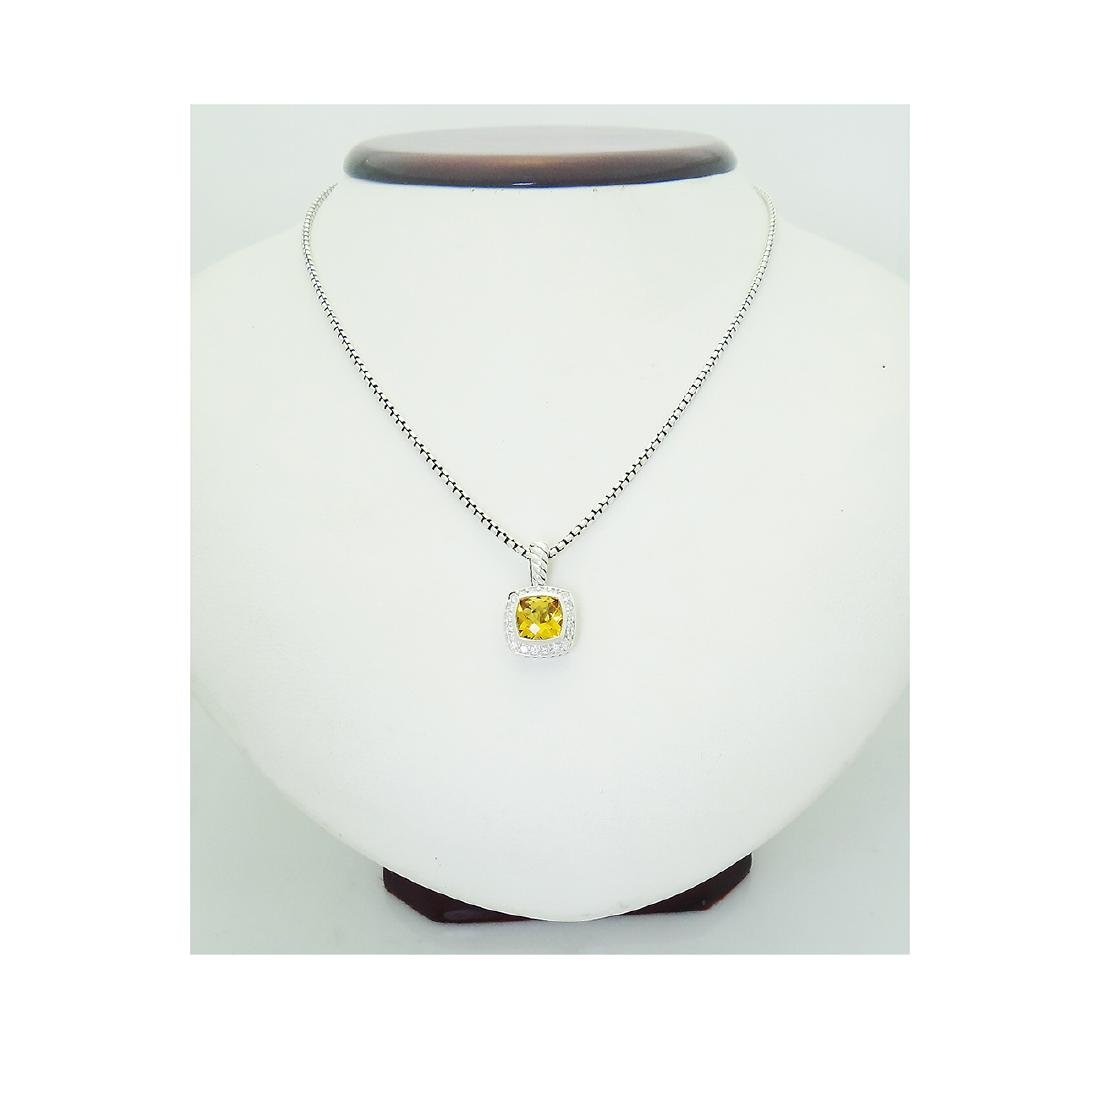 David Yurman 925 Sterling Silver Lemon Citrine Diamond